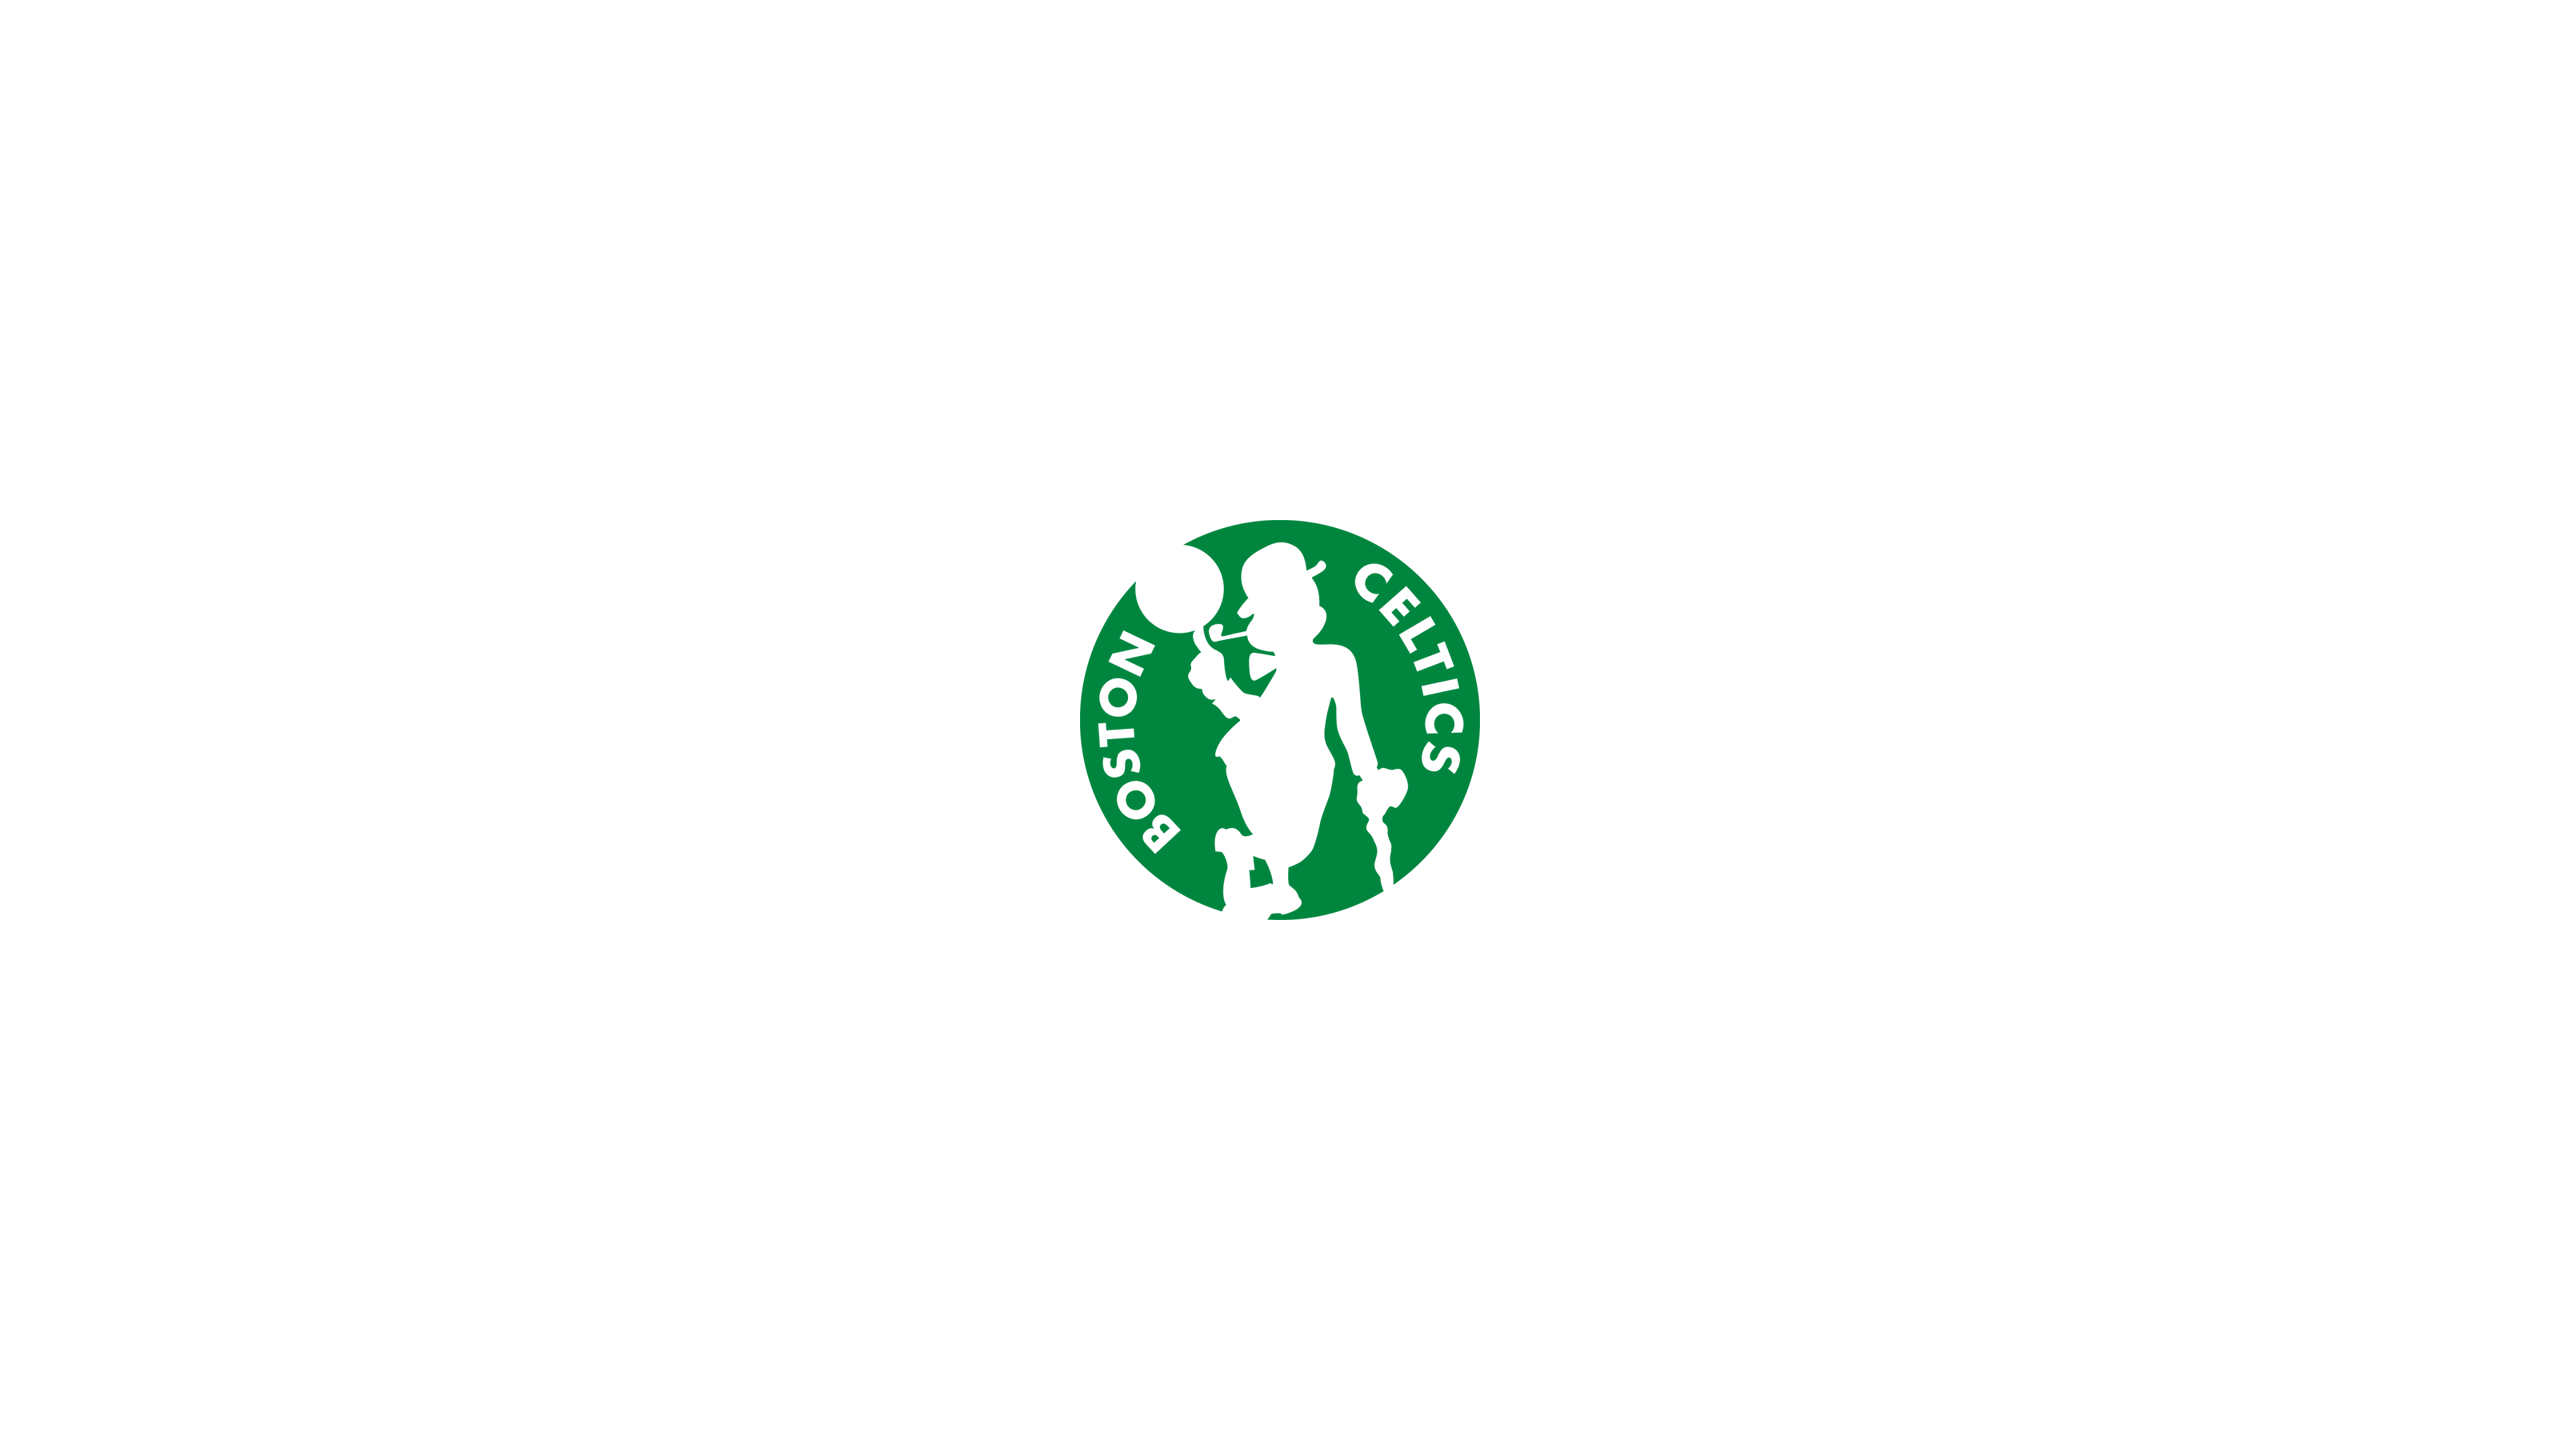 Boston Celtics (Alternate)